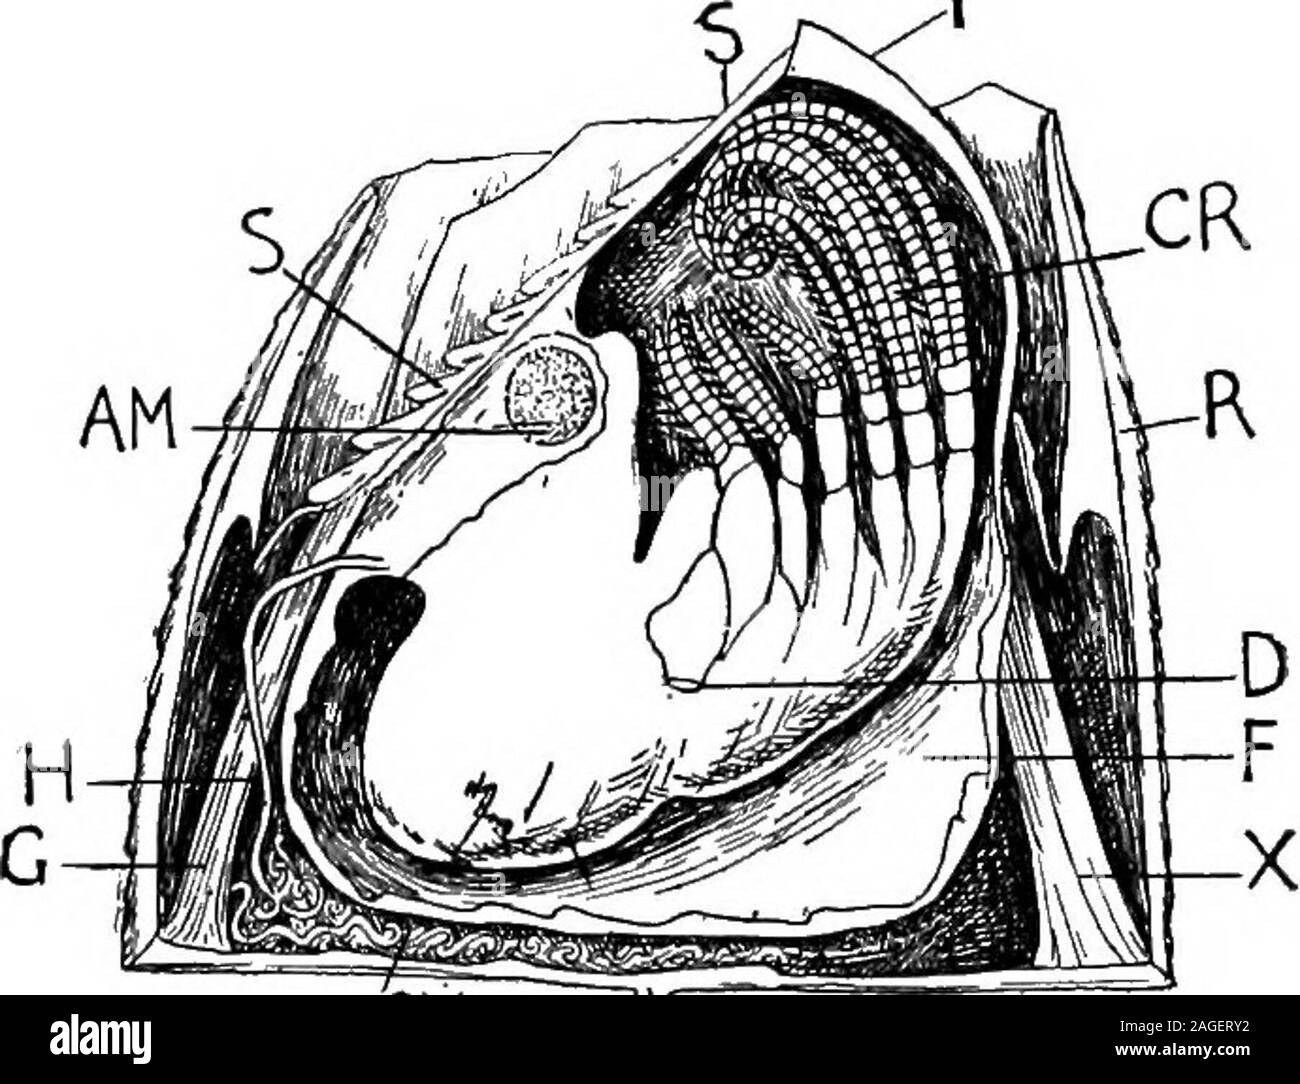 . Outlines of zoology. the base of this lies theanus. Around the body there is a fold of skin, and from this ariie fivecalcareous plates, an unpaired dorsal carina, two scuta right and left 304 PHYLUM ARTHROPODA. anteriorly, two terga at the free posterior end. The nervous systemconsists of a brain, an cesophageal ring, and a ventral chain of five orrnore ganglia. There is a fused pair of rudimentary eyes. No specialcirculatory or respiratory organs are known. Two excretory (?) tubeslead from (ccelomic) cavities to the base of the second maxillae, and areprobably comparable with shell glands a Stock Photo